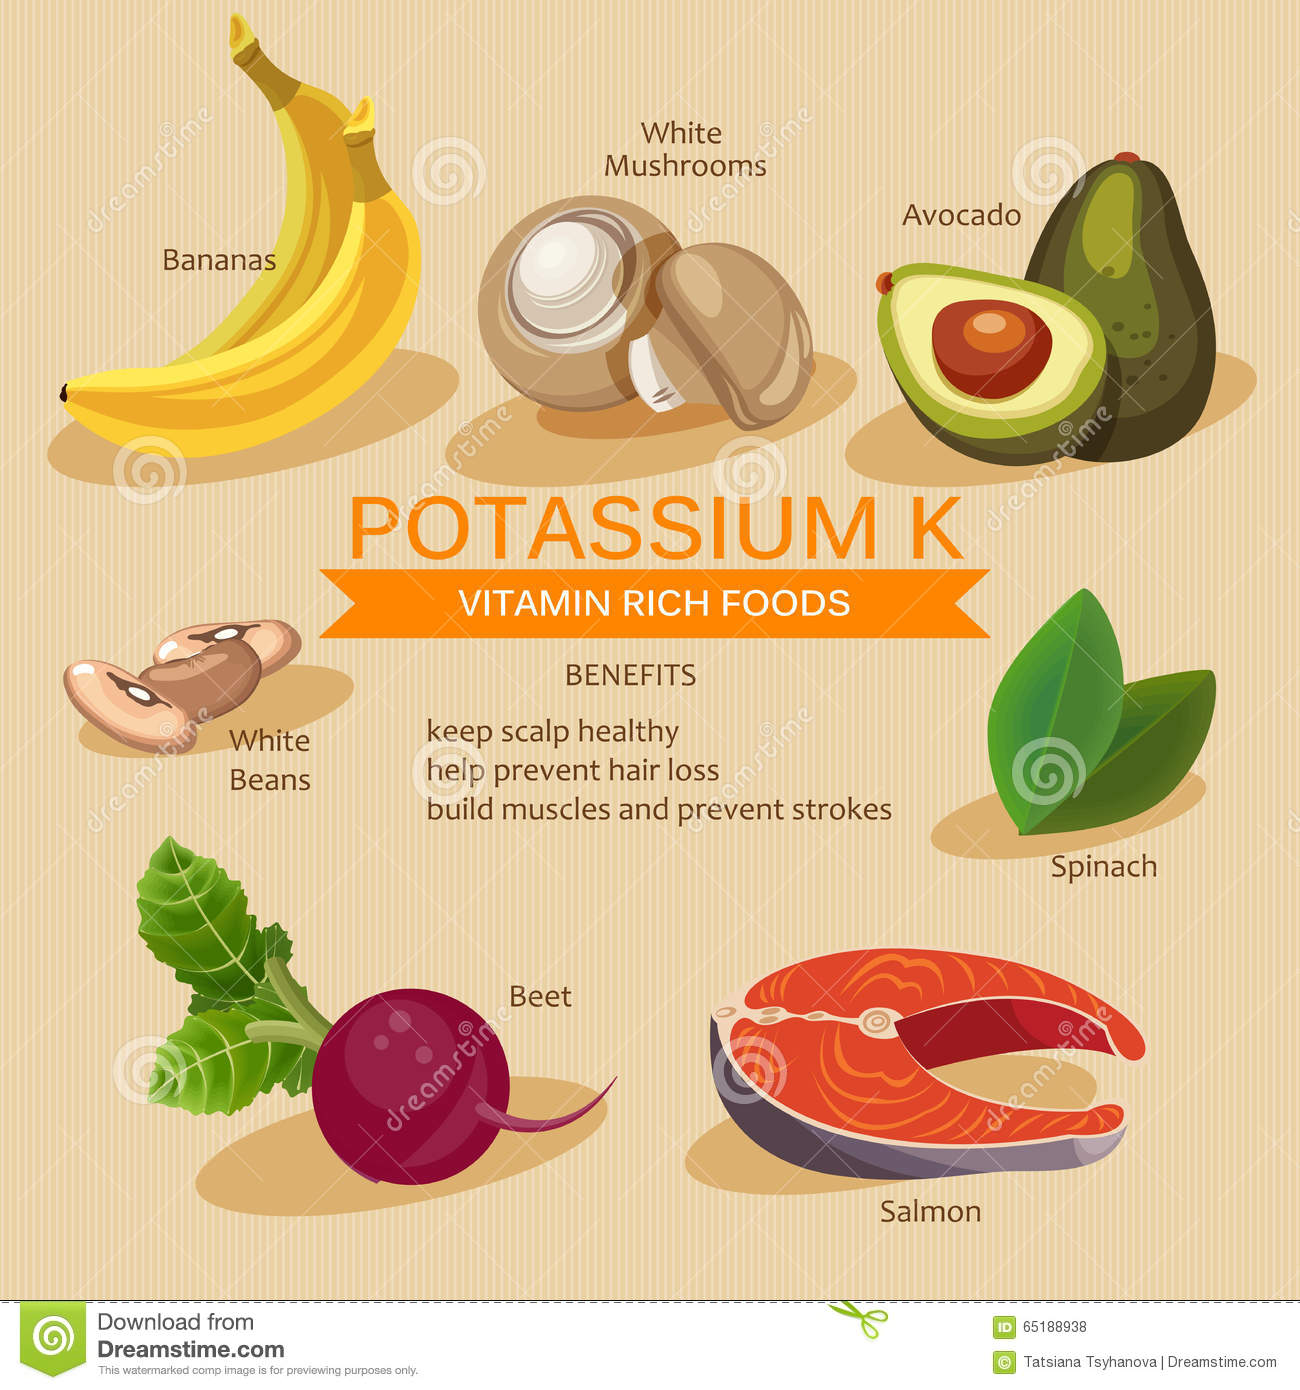 Potassium foods vitamins and minerals foods illustrator for Potassium in fish